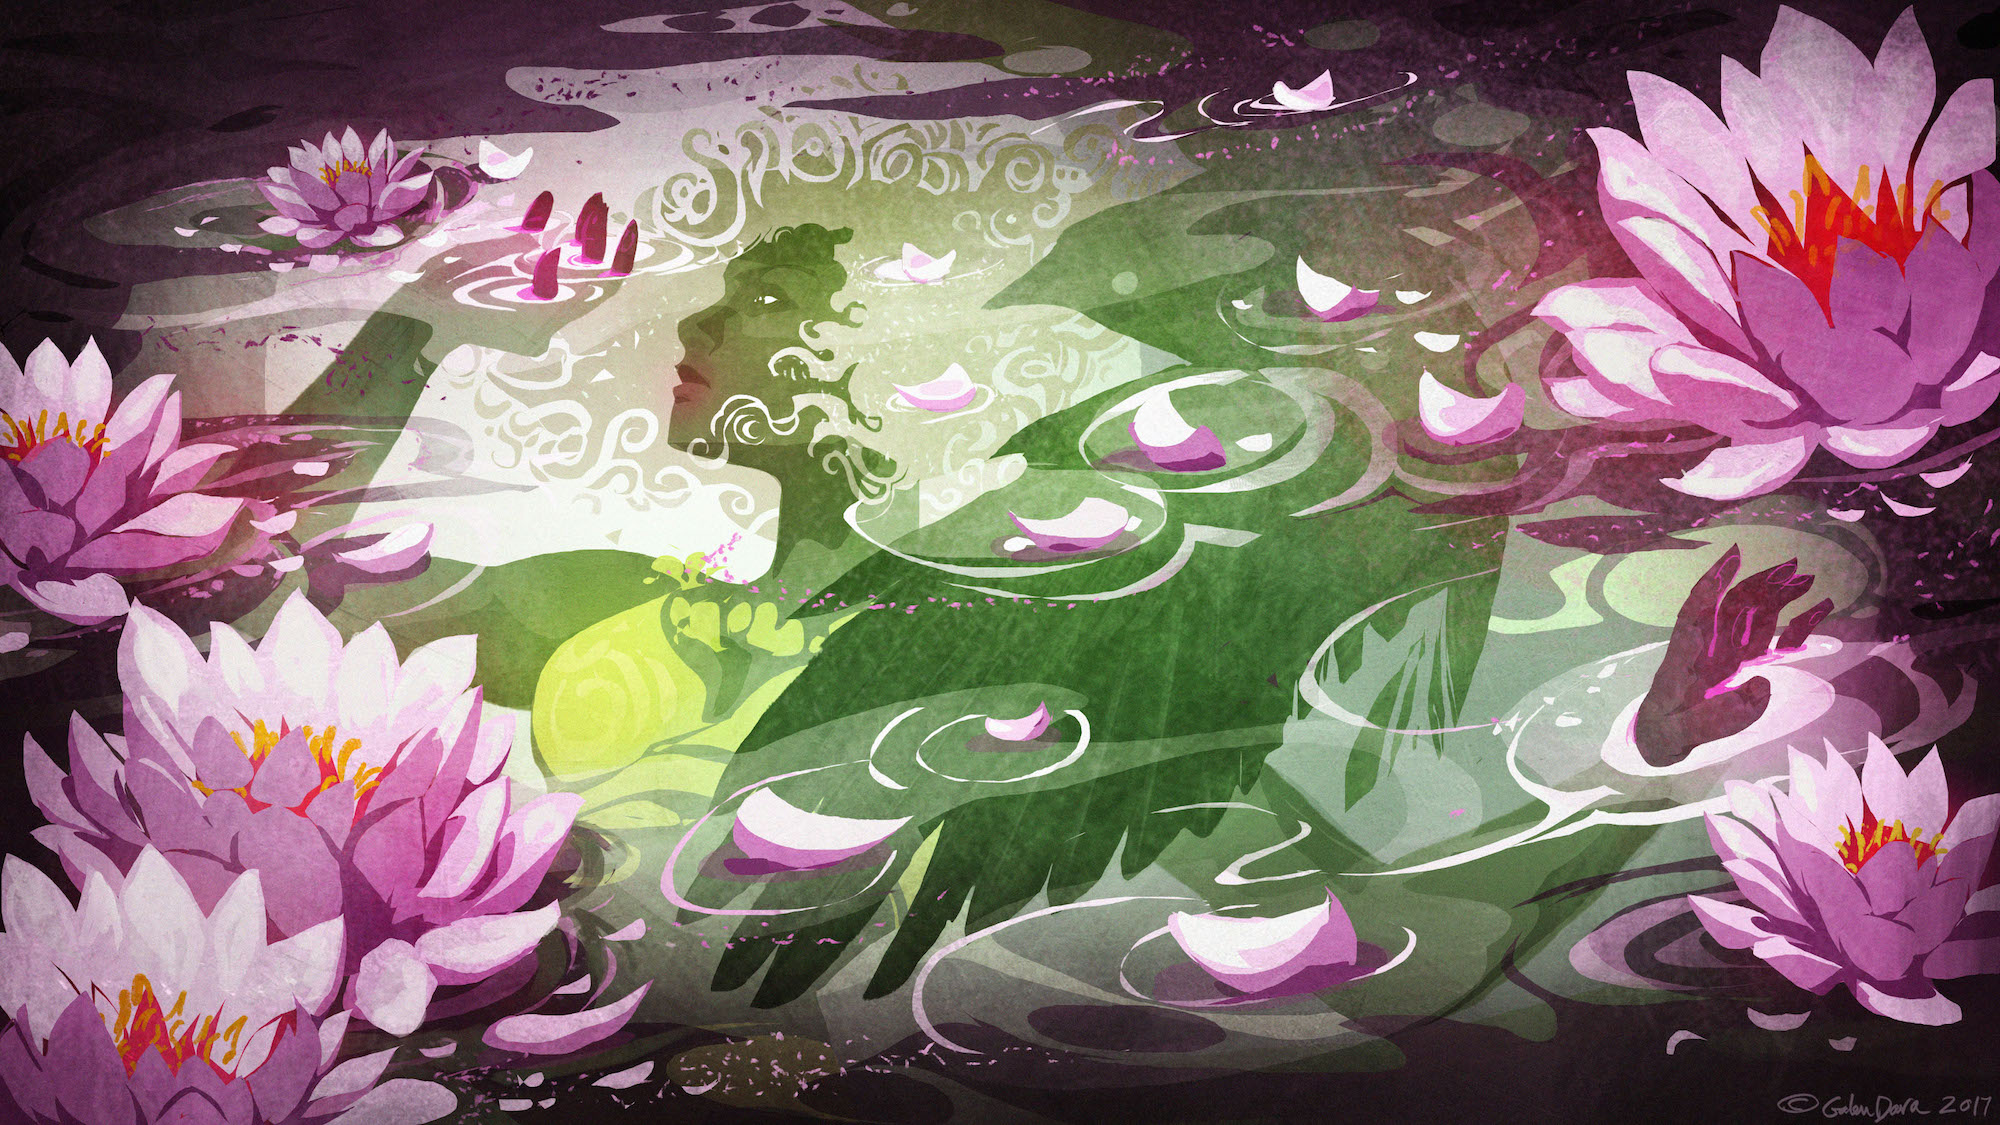 A teen girl floats beneath the surface of the water, surrounded by floating pink water lilies and overshadowed by the silhouette of a crow.